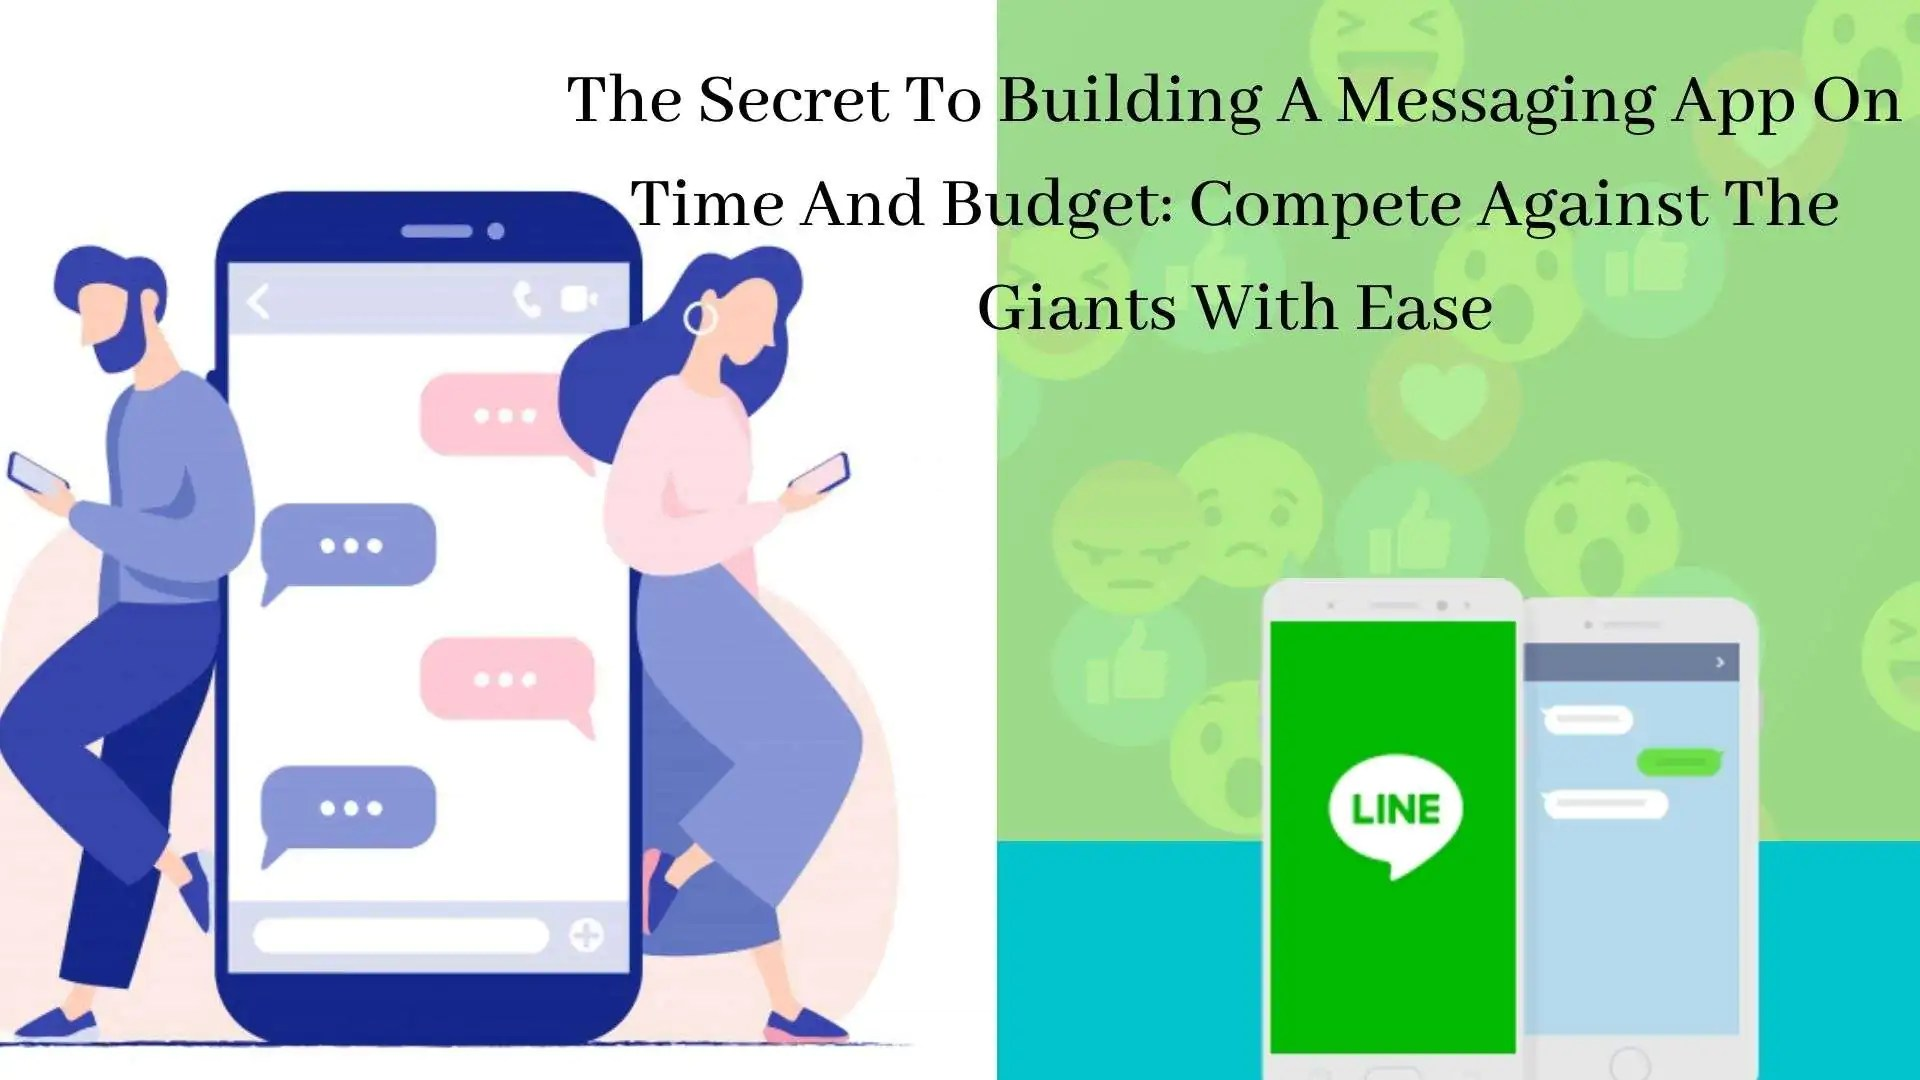 The Secret To Building A Messaging App On Time And Budget_ Compete Against The Giants With Ease